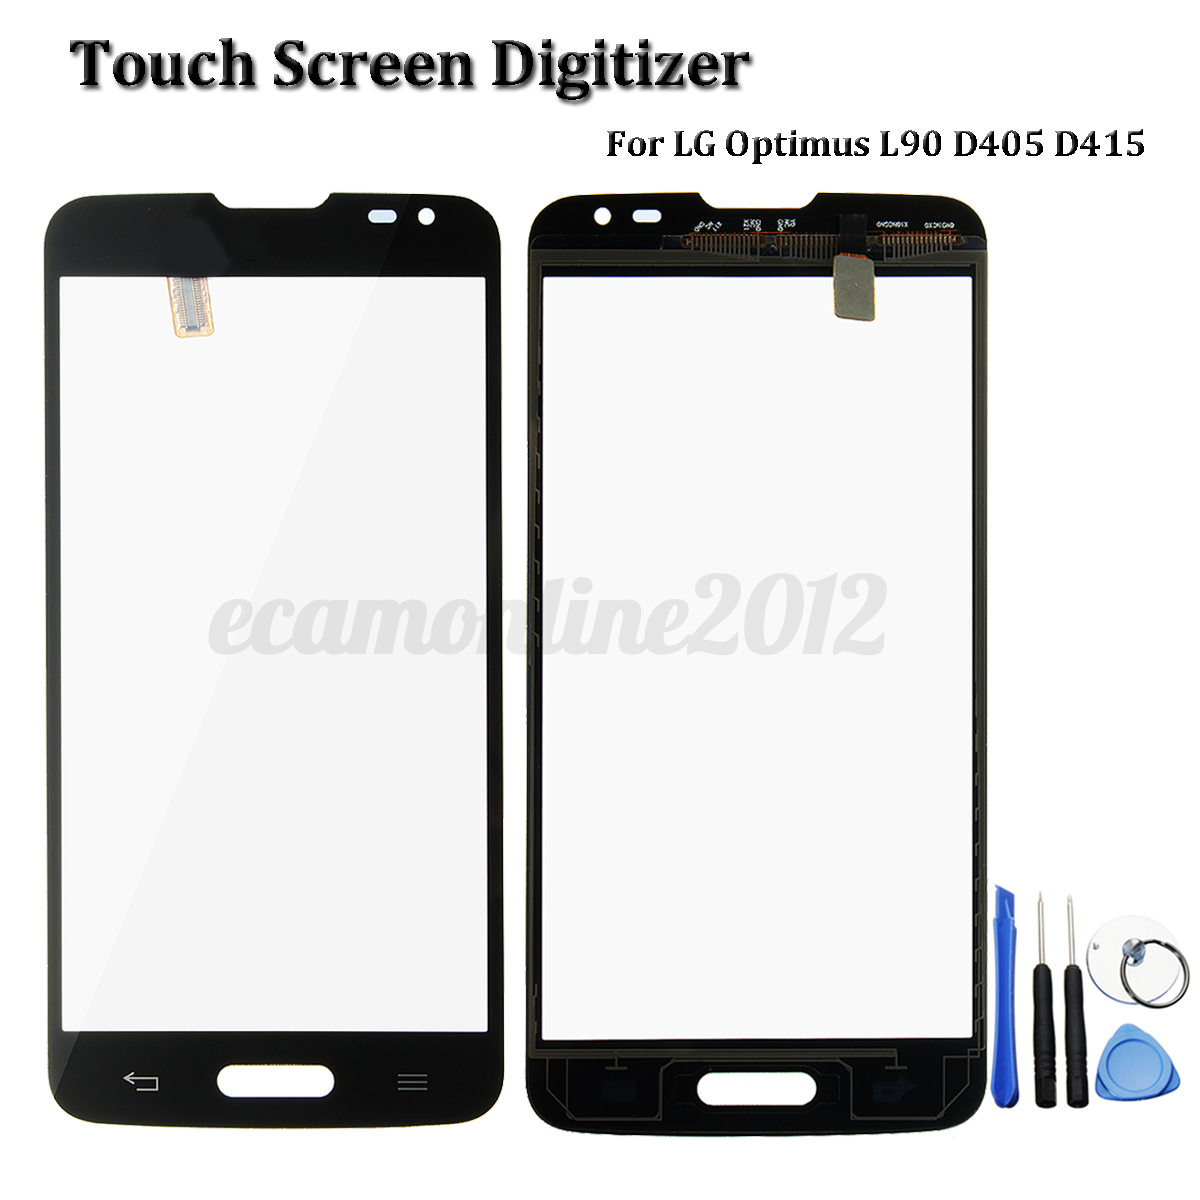 the zte grand x 4 lcd replacement qualification start Web